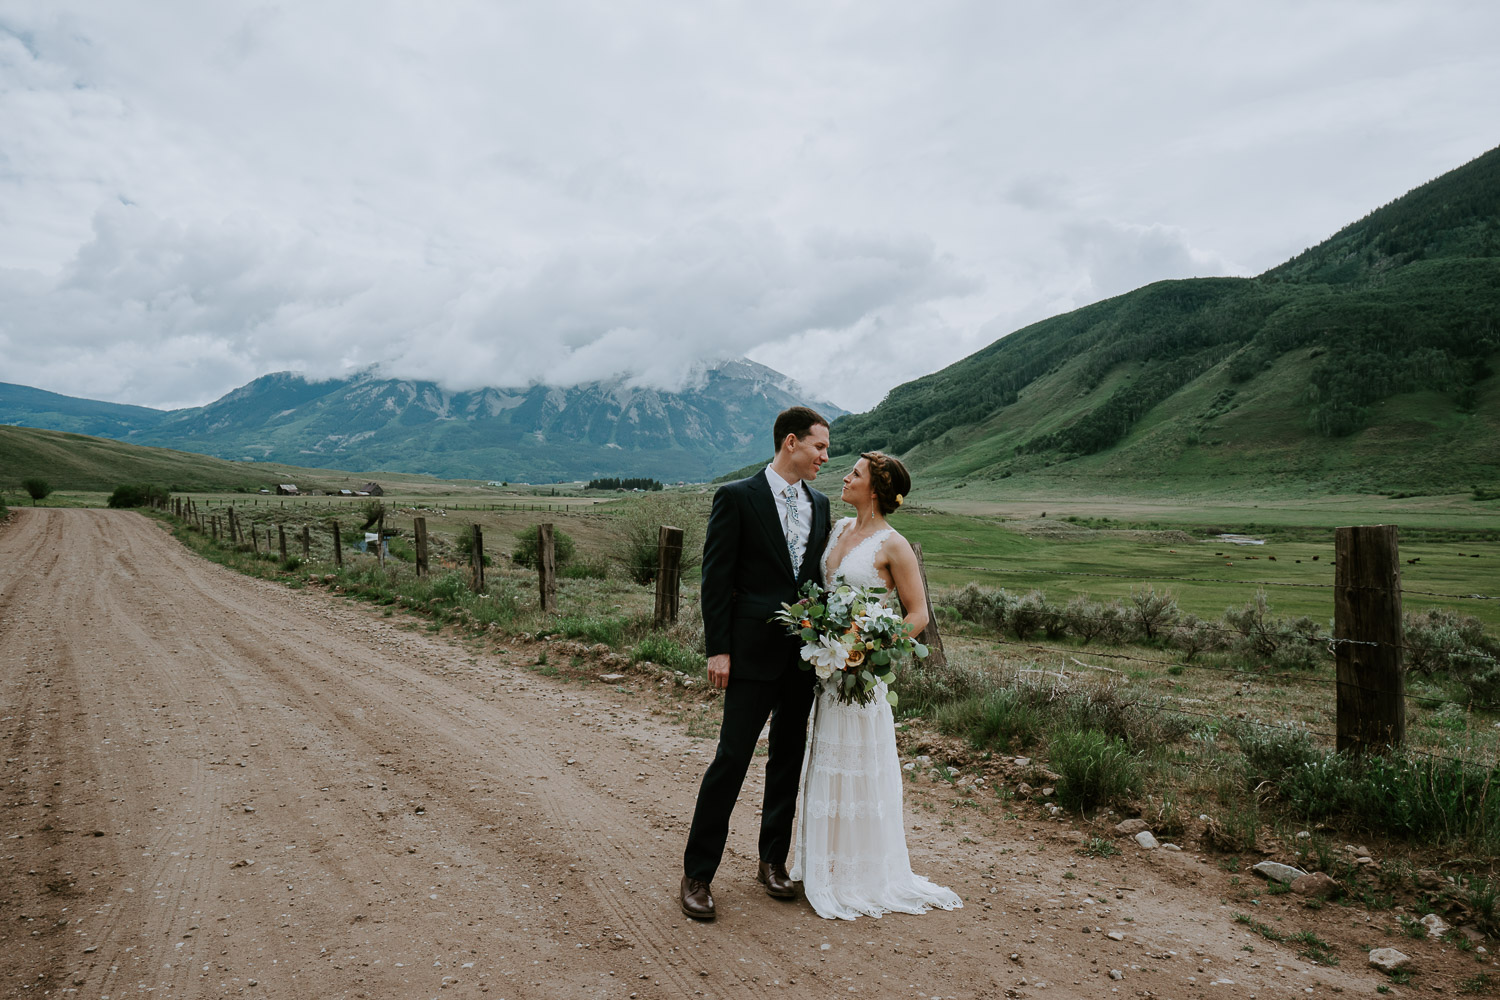 Laura_Alexe_Crested_Butte_Wedding_MegONeillPhotography__180616_73